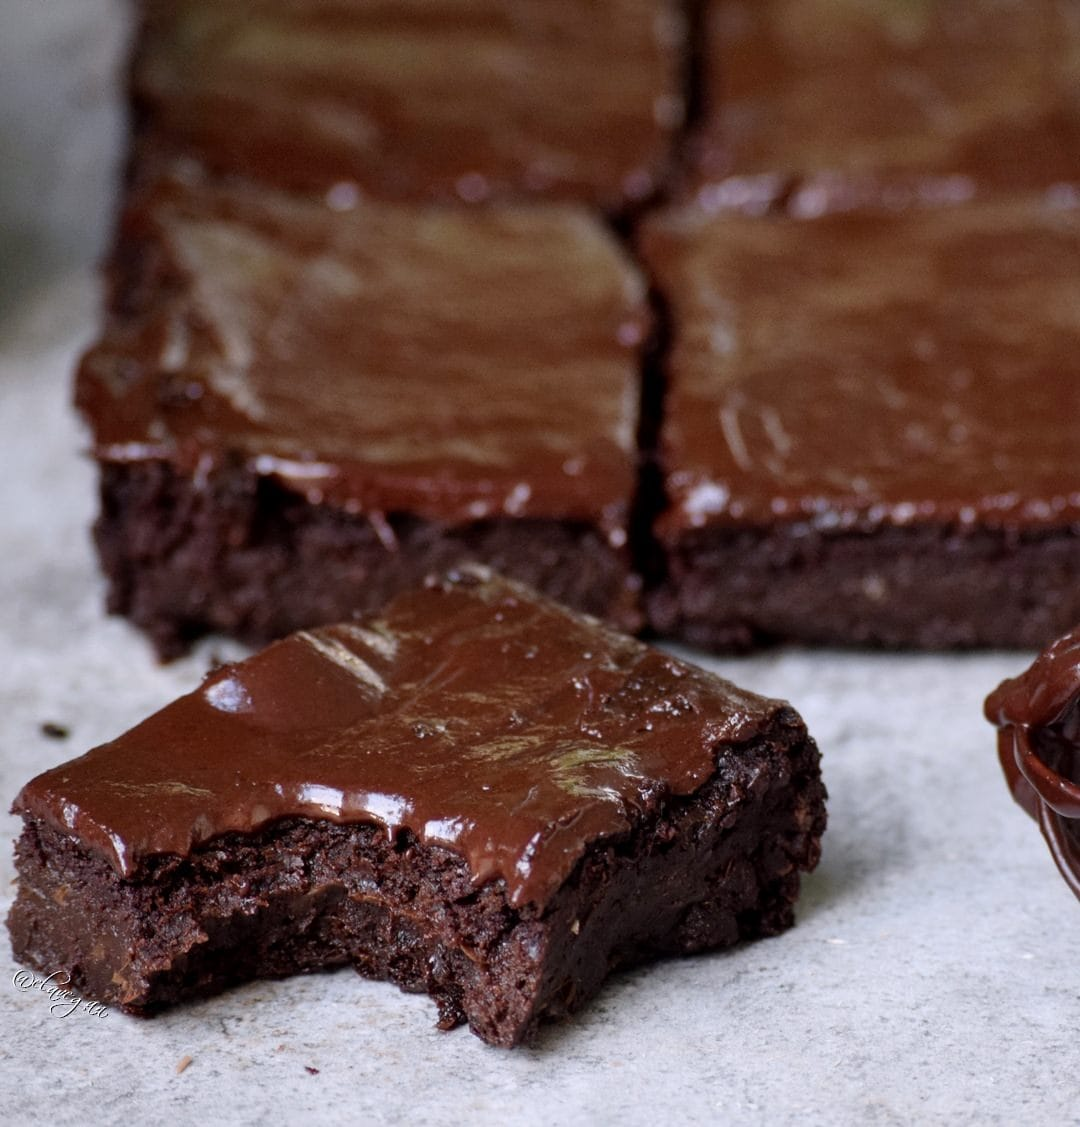 best vegan brownies recipe - gluten free, fudgy, rich, chocolatey and moist